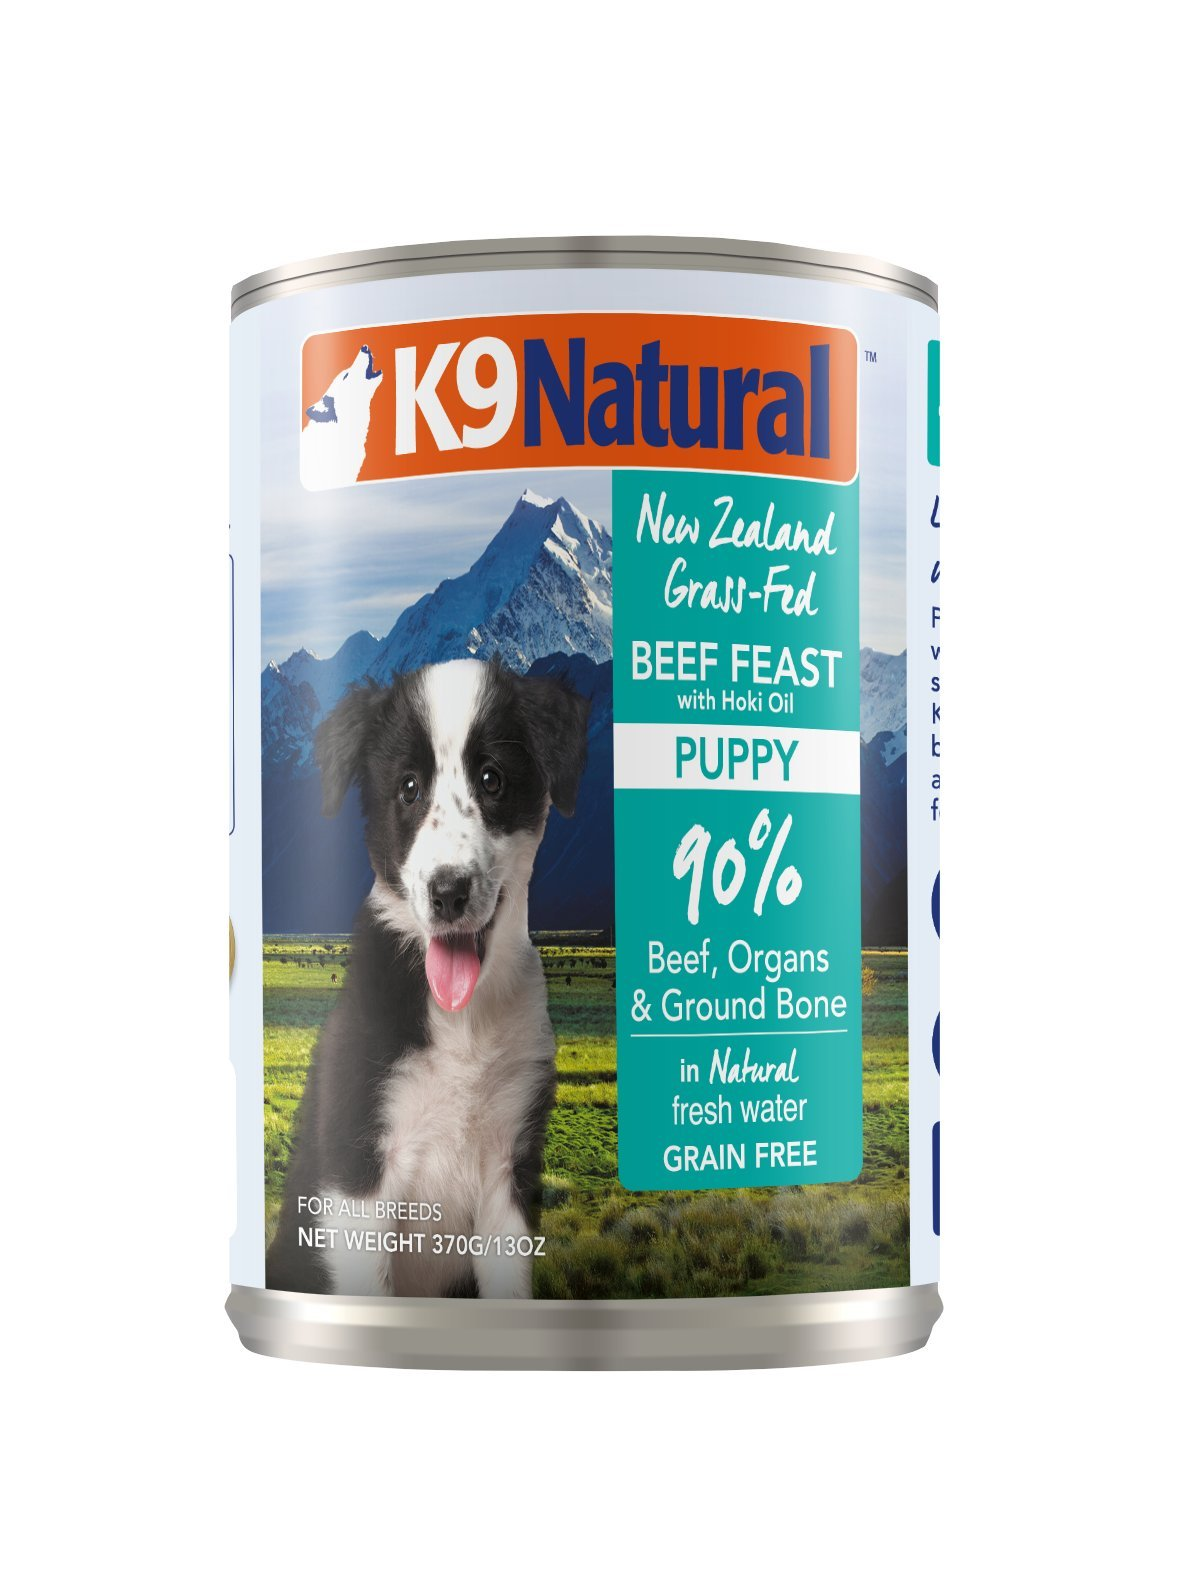 K9 Natural Canned Puppy Food Perfect Grain Free, Healthy, Hypoallergenic Limited Ingredients All Puppy Types - BPA-Free Wet Puppy Food - Beef & Hoki Oil Flavour - 13oz (12 Pack) by K9 Natural